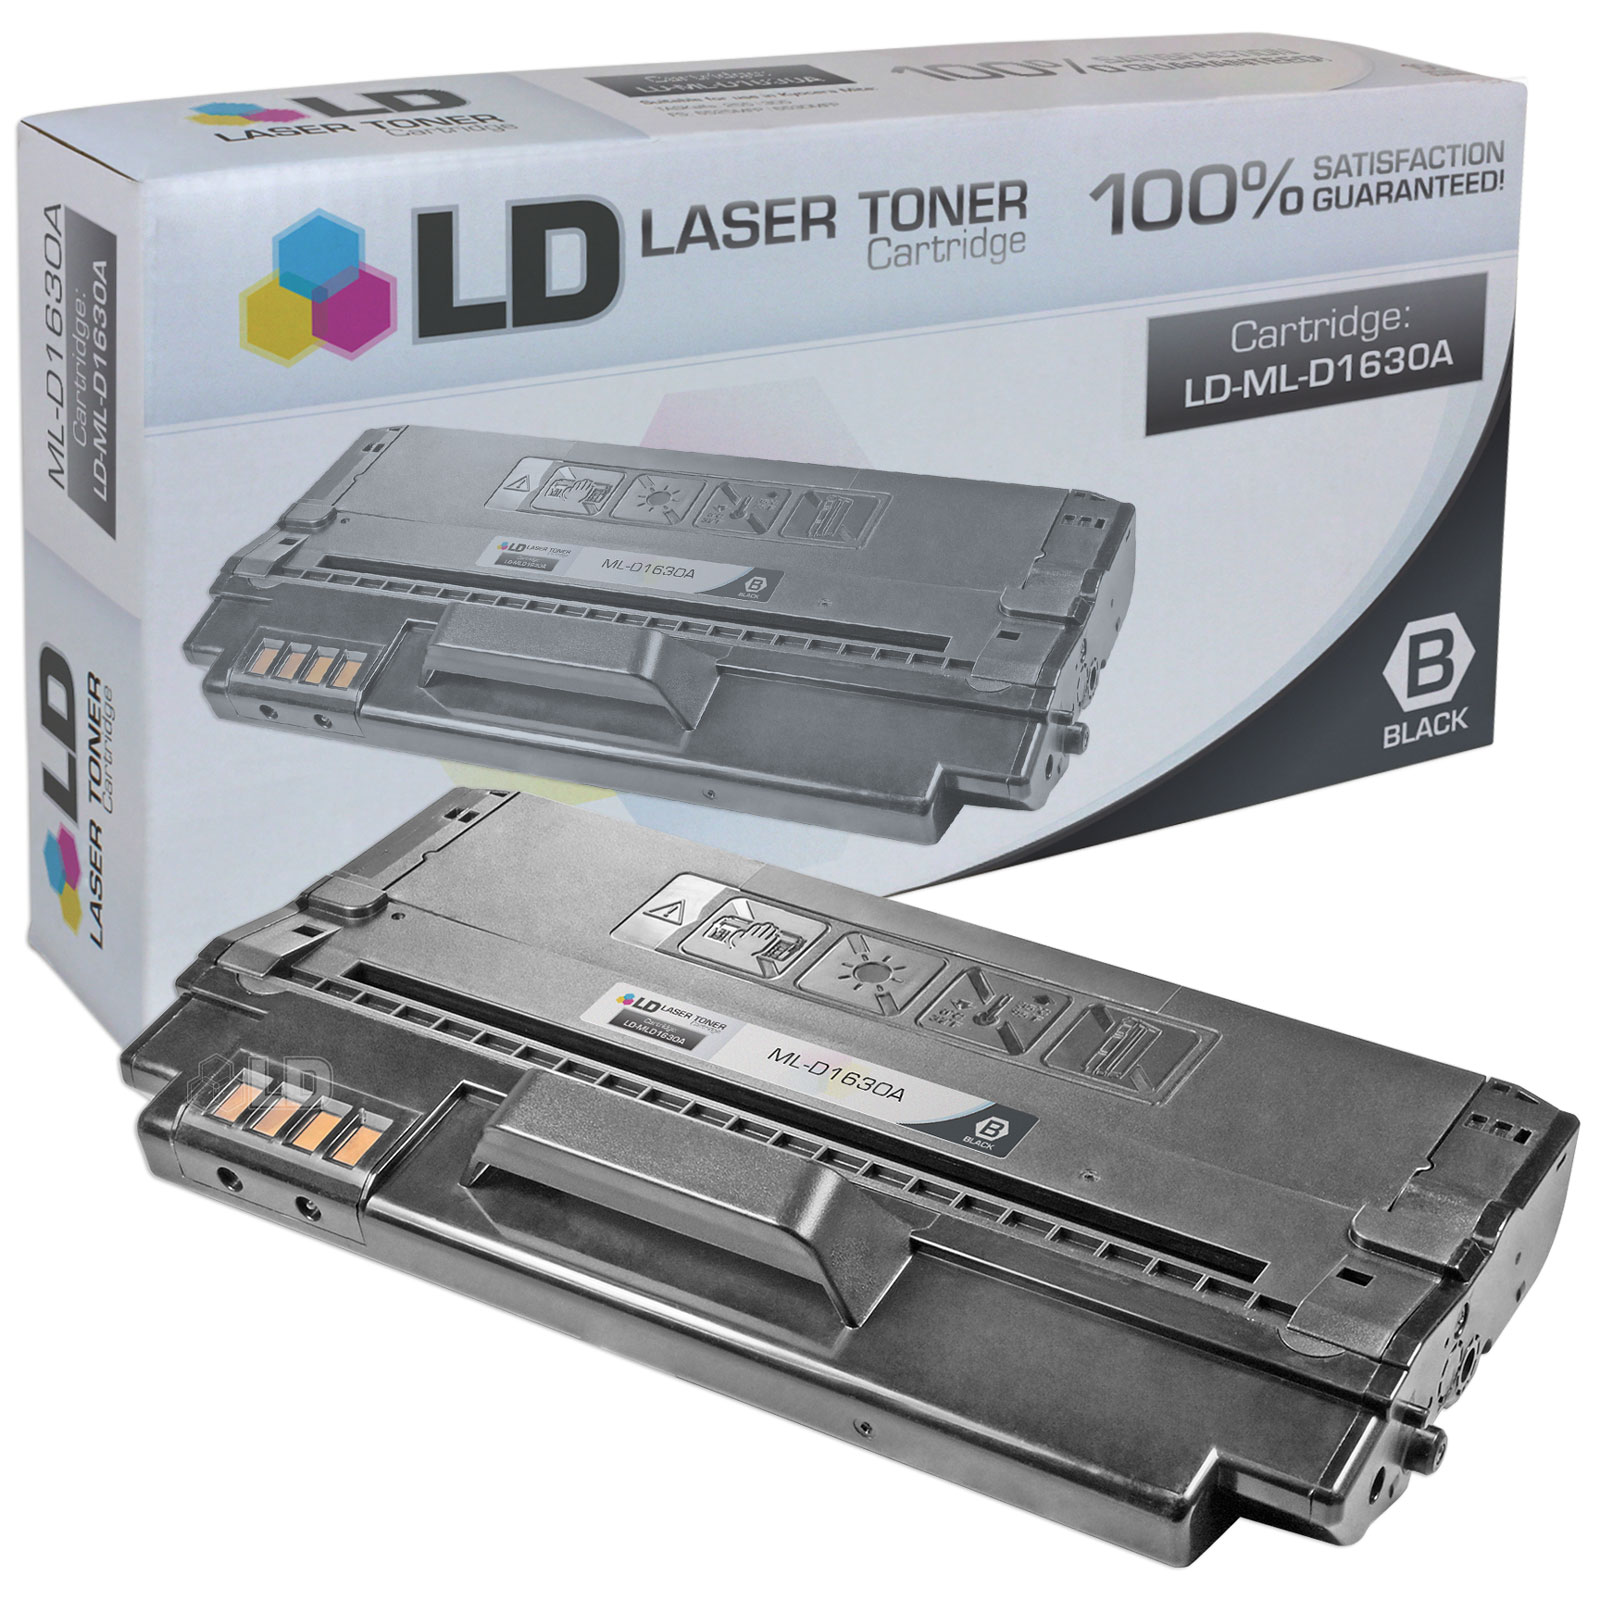 LD Compatible Replacement for Samsung ML-D1630A Black Laser Toner Cartridge for use in Samsung ML-1630, ML-1630W, SCX-4500, and SCX-4500W Printers